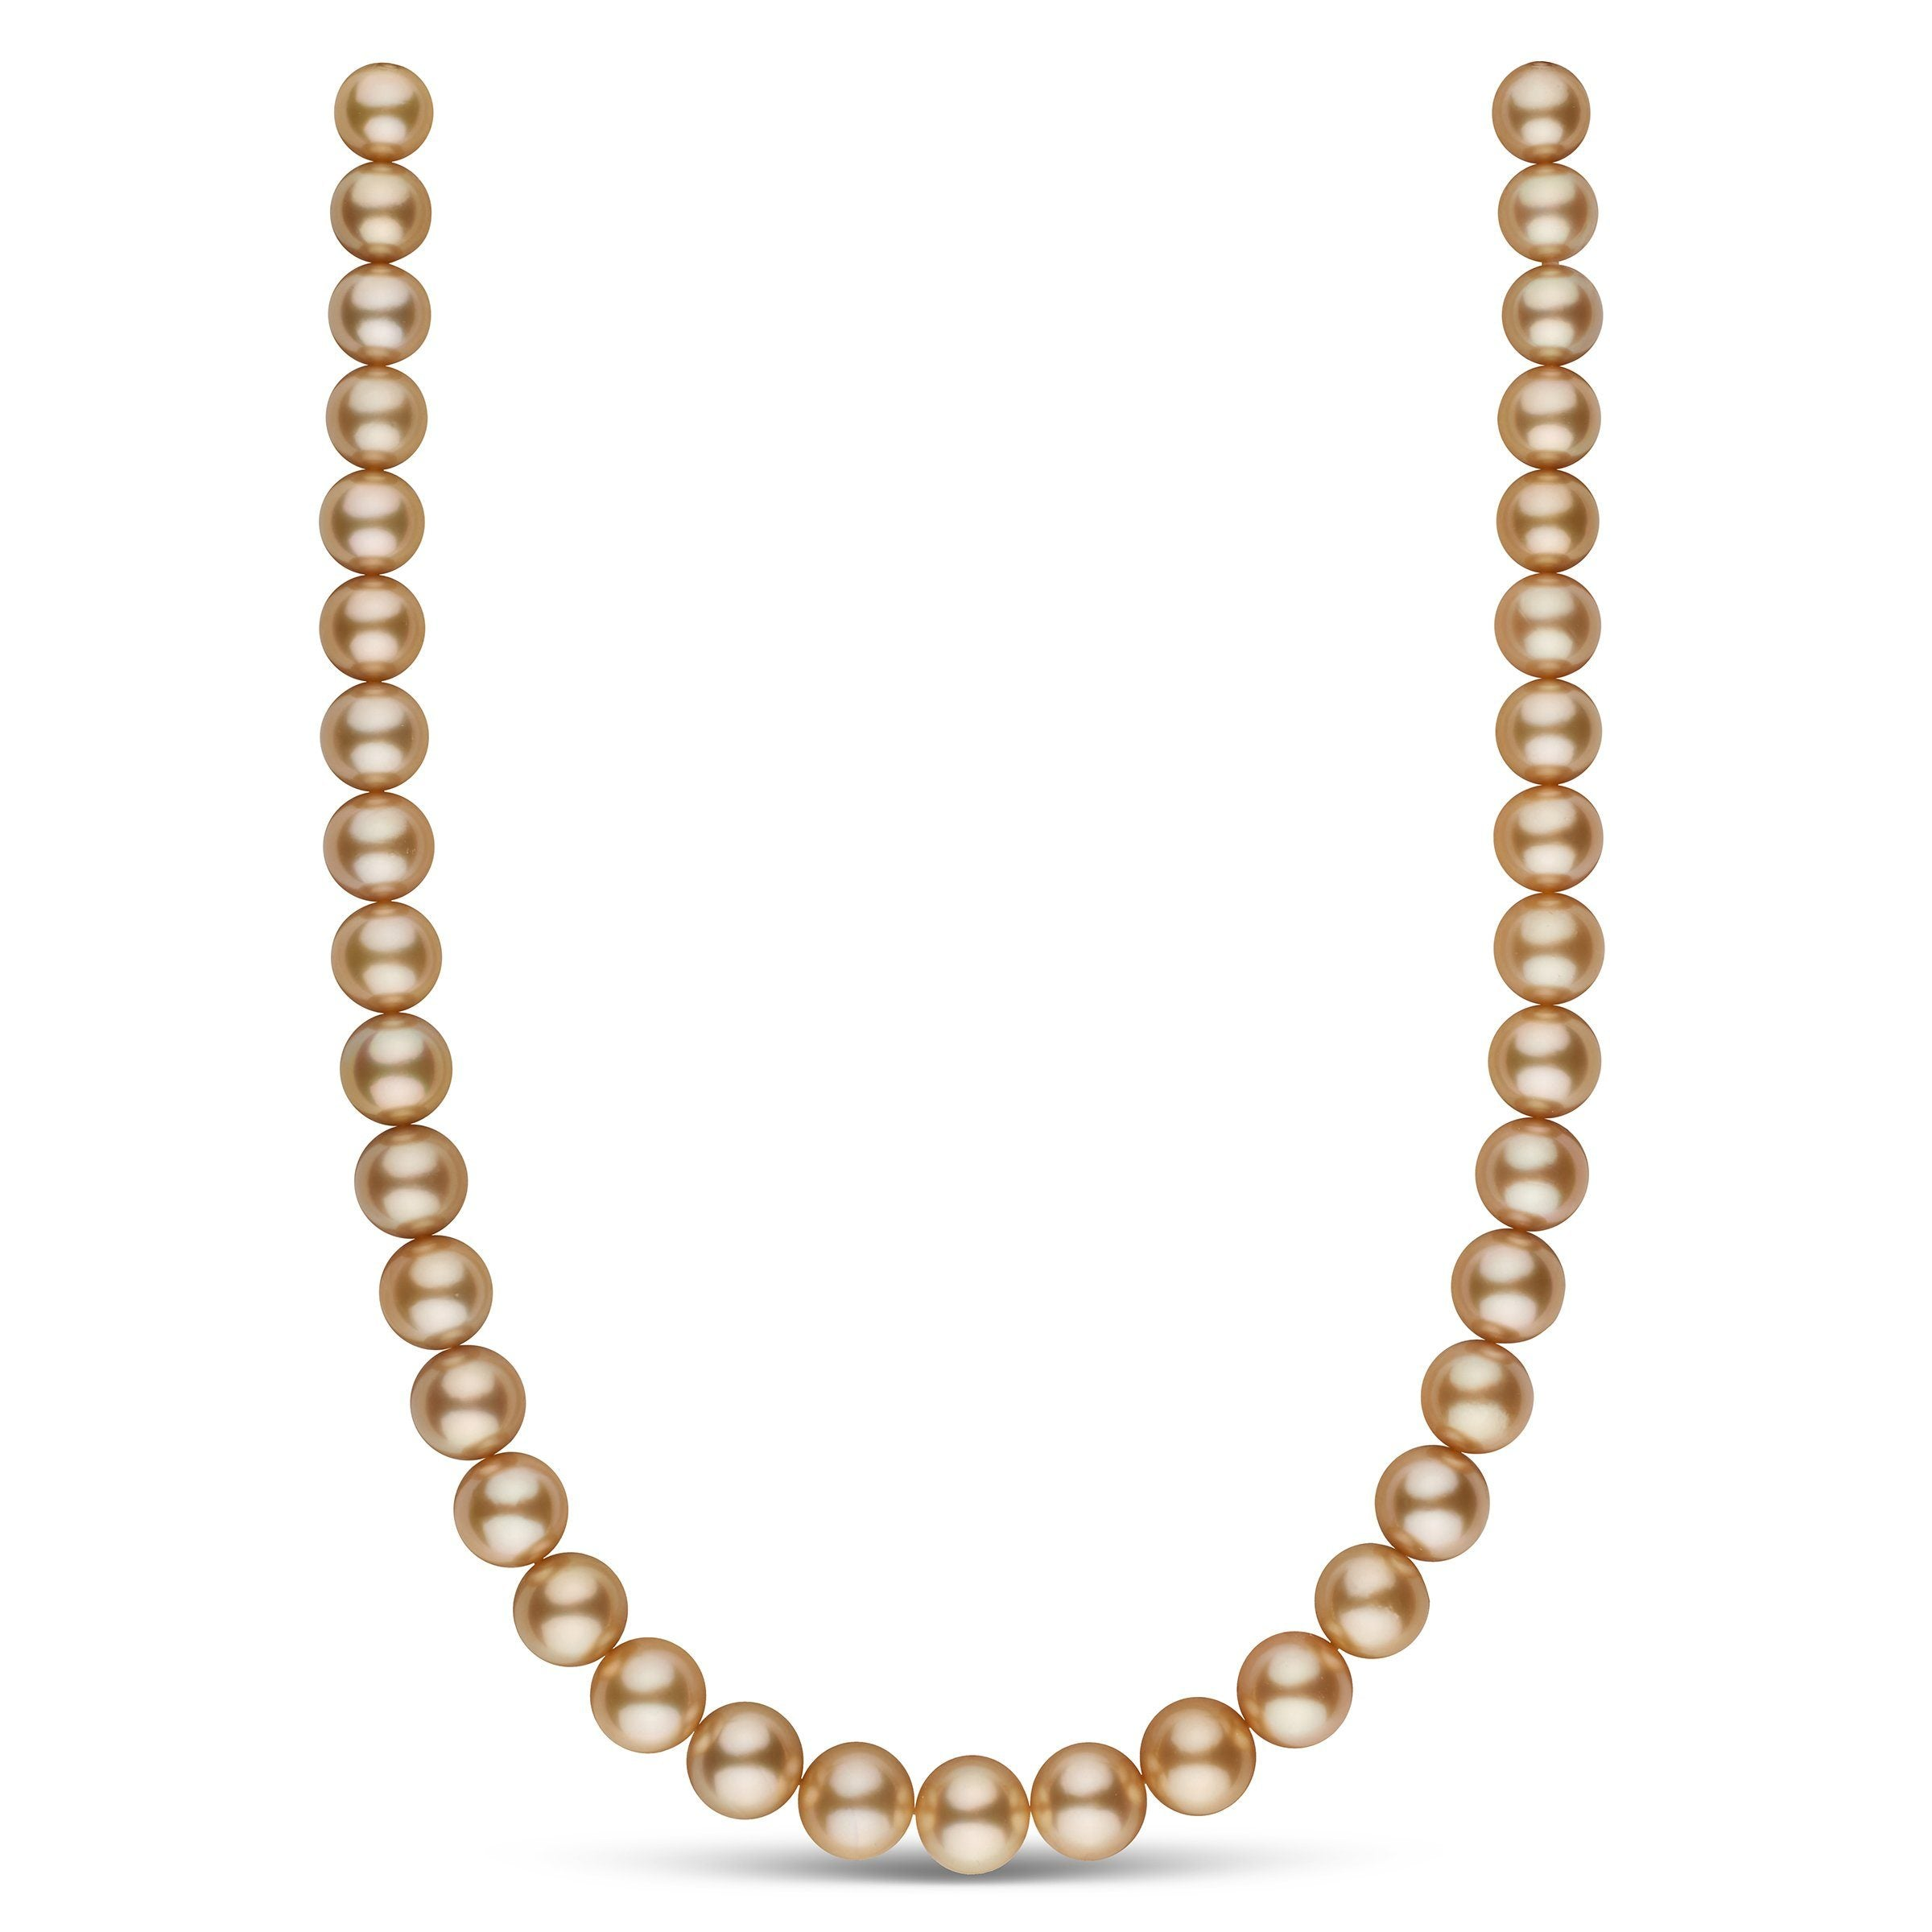 The Meryl Streep Golden South Sea Pearl Necklace